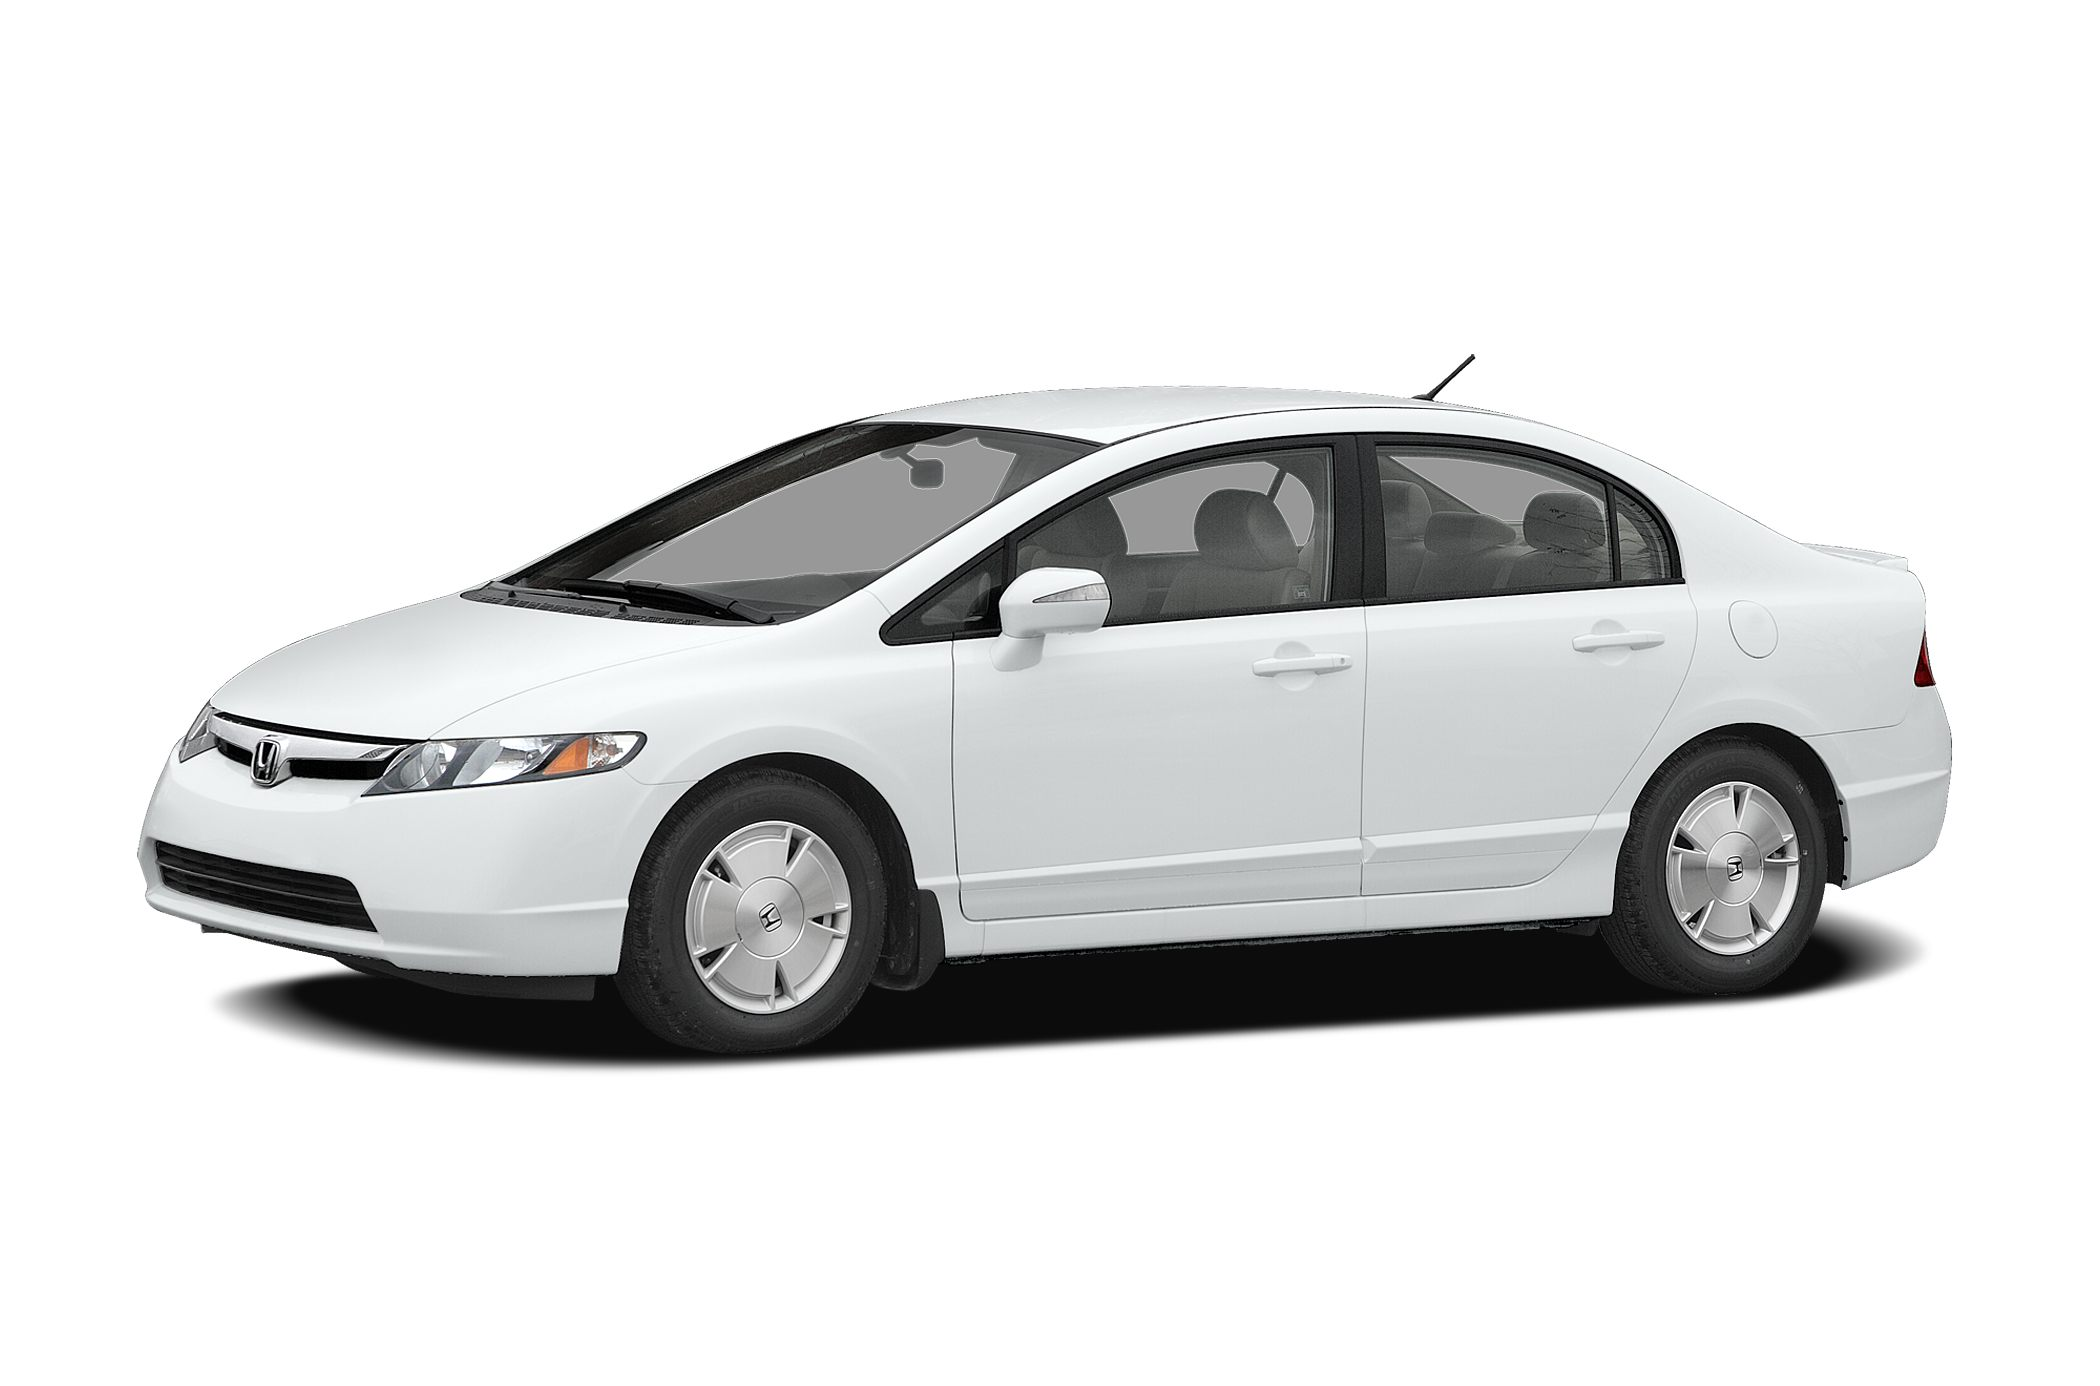 2007 Honda Civic Hybrid Sedan for sale in Chicago for $7,750 with 135,097 miles